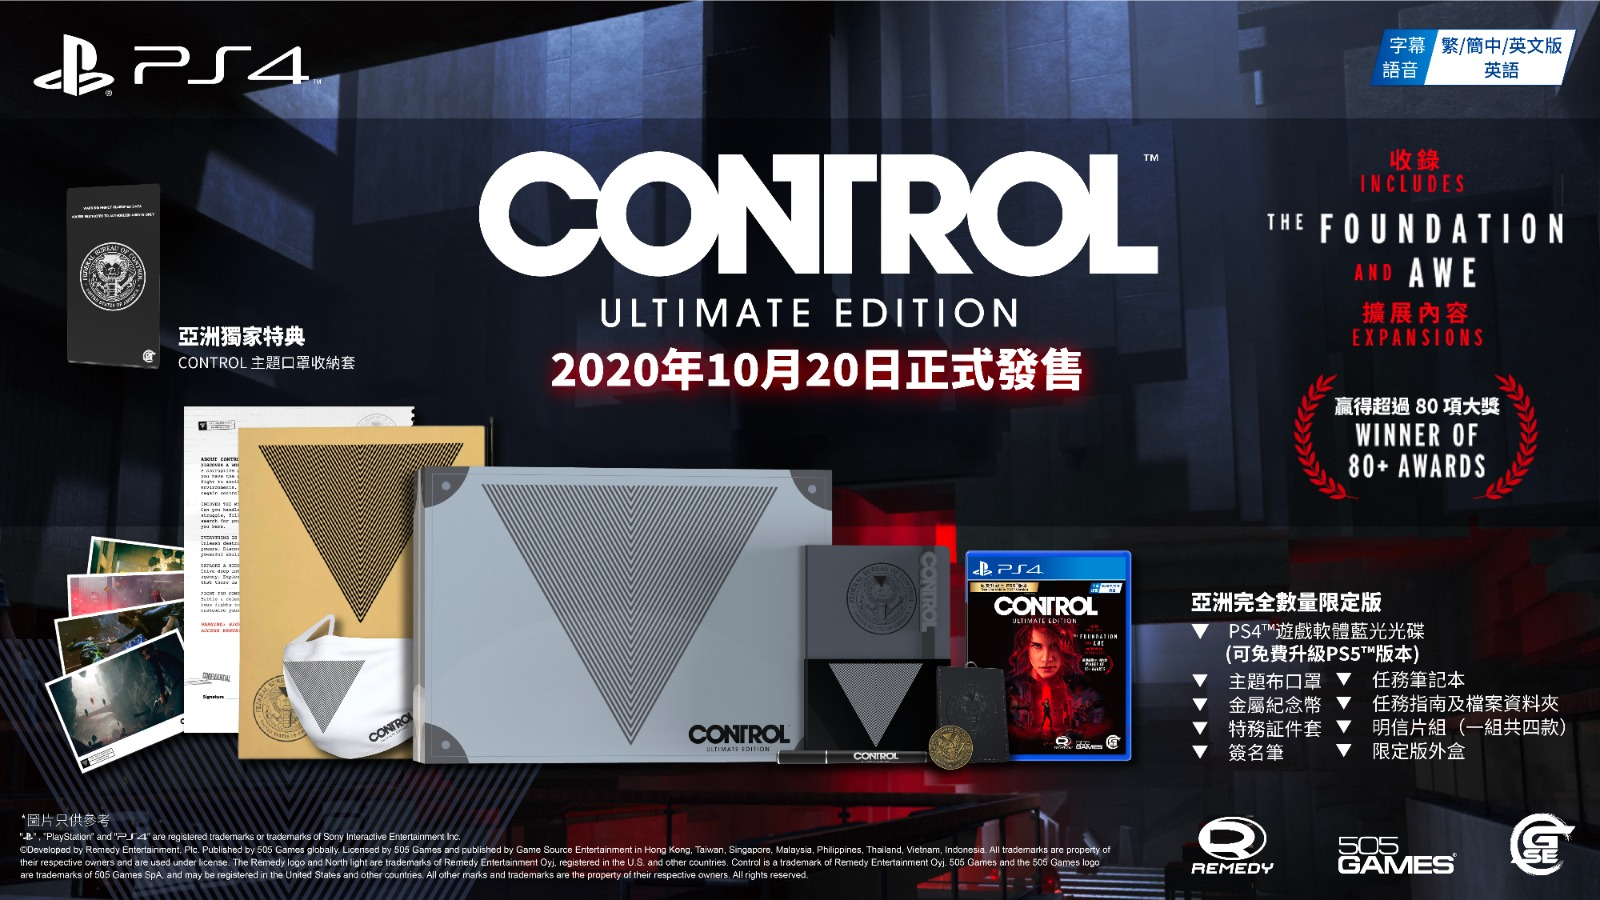 Control,控制,終極版,PS4,Remedy Entertainment,505 Games,Fanthful,GSE,